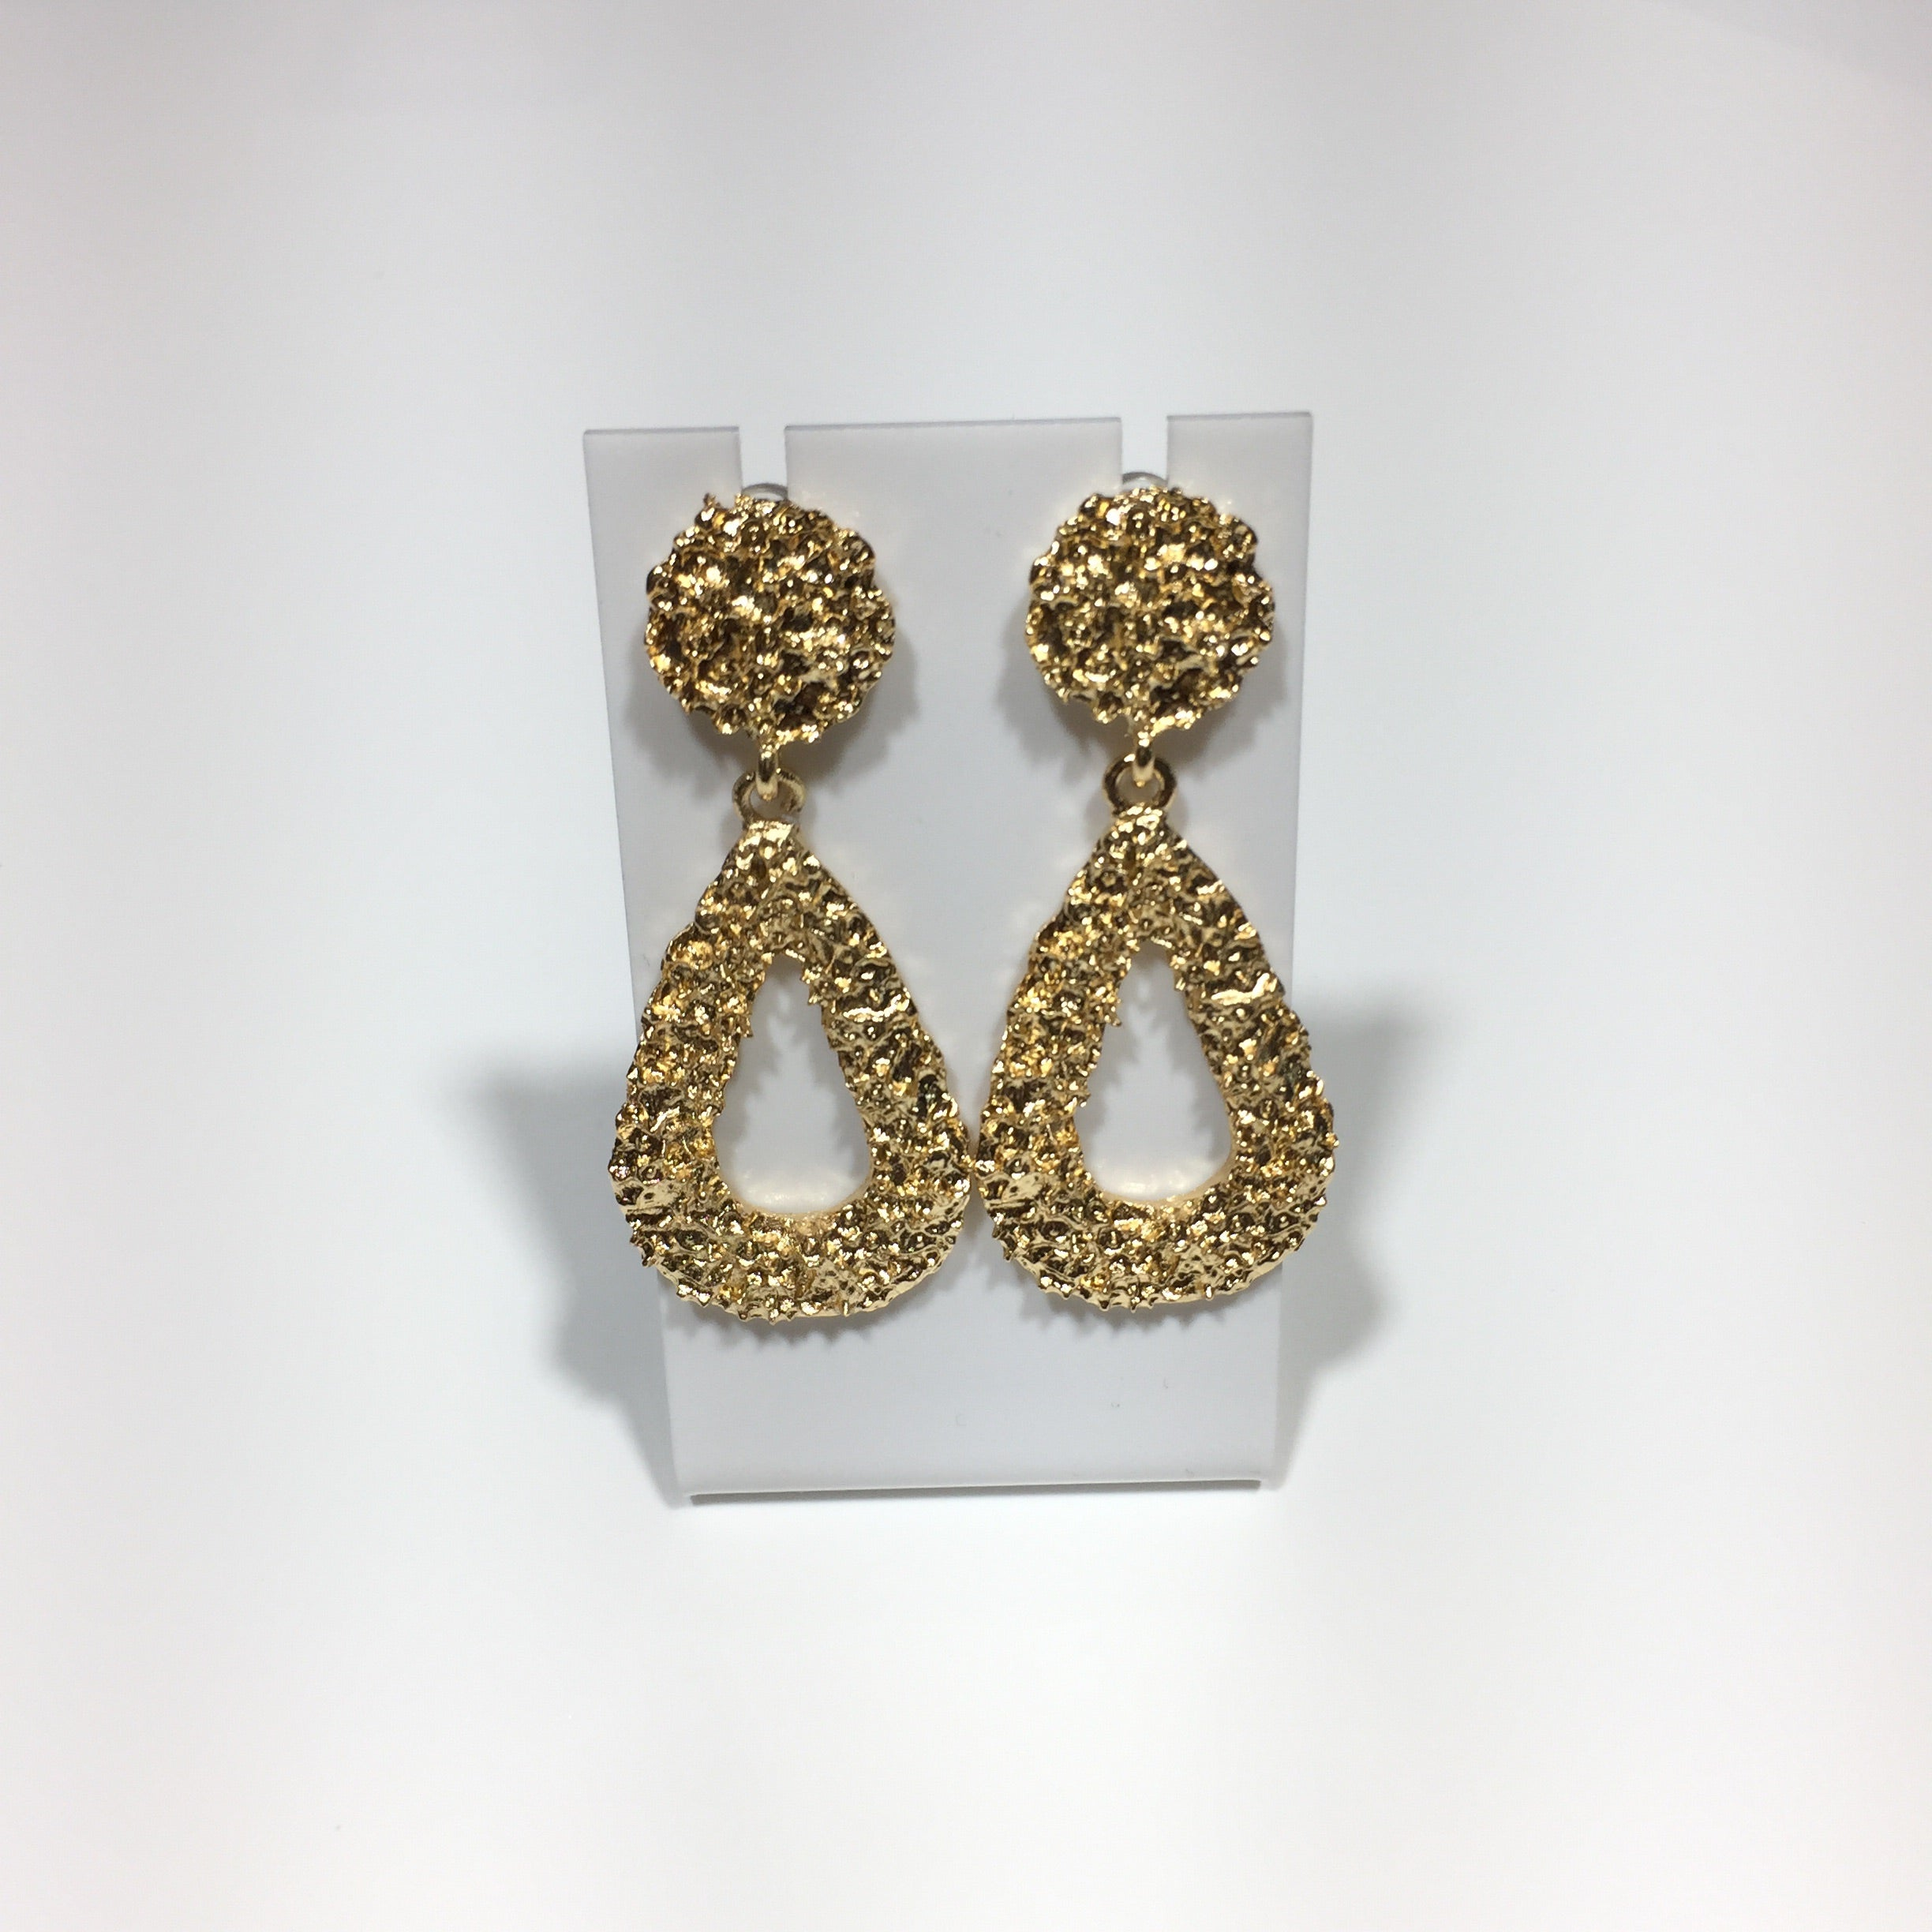 Tear Drop Statement Earrings